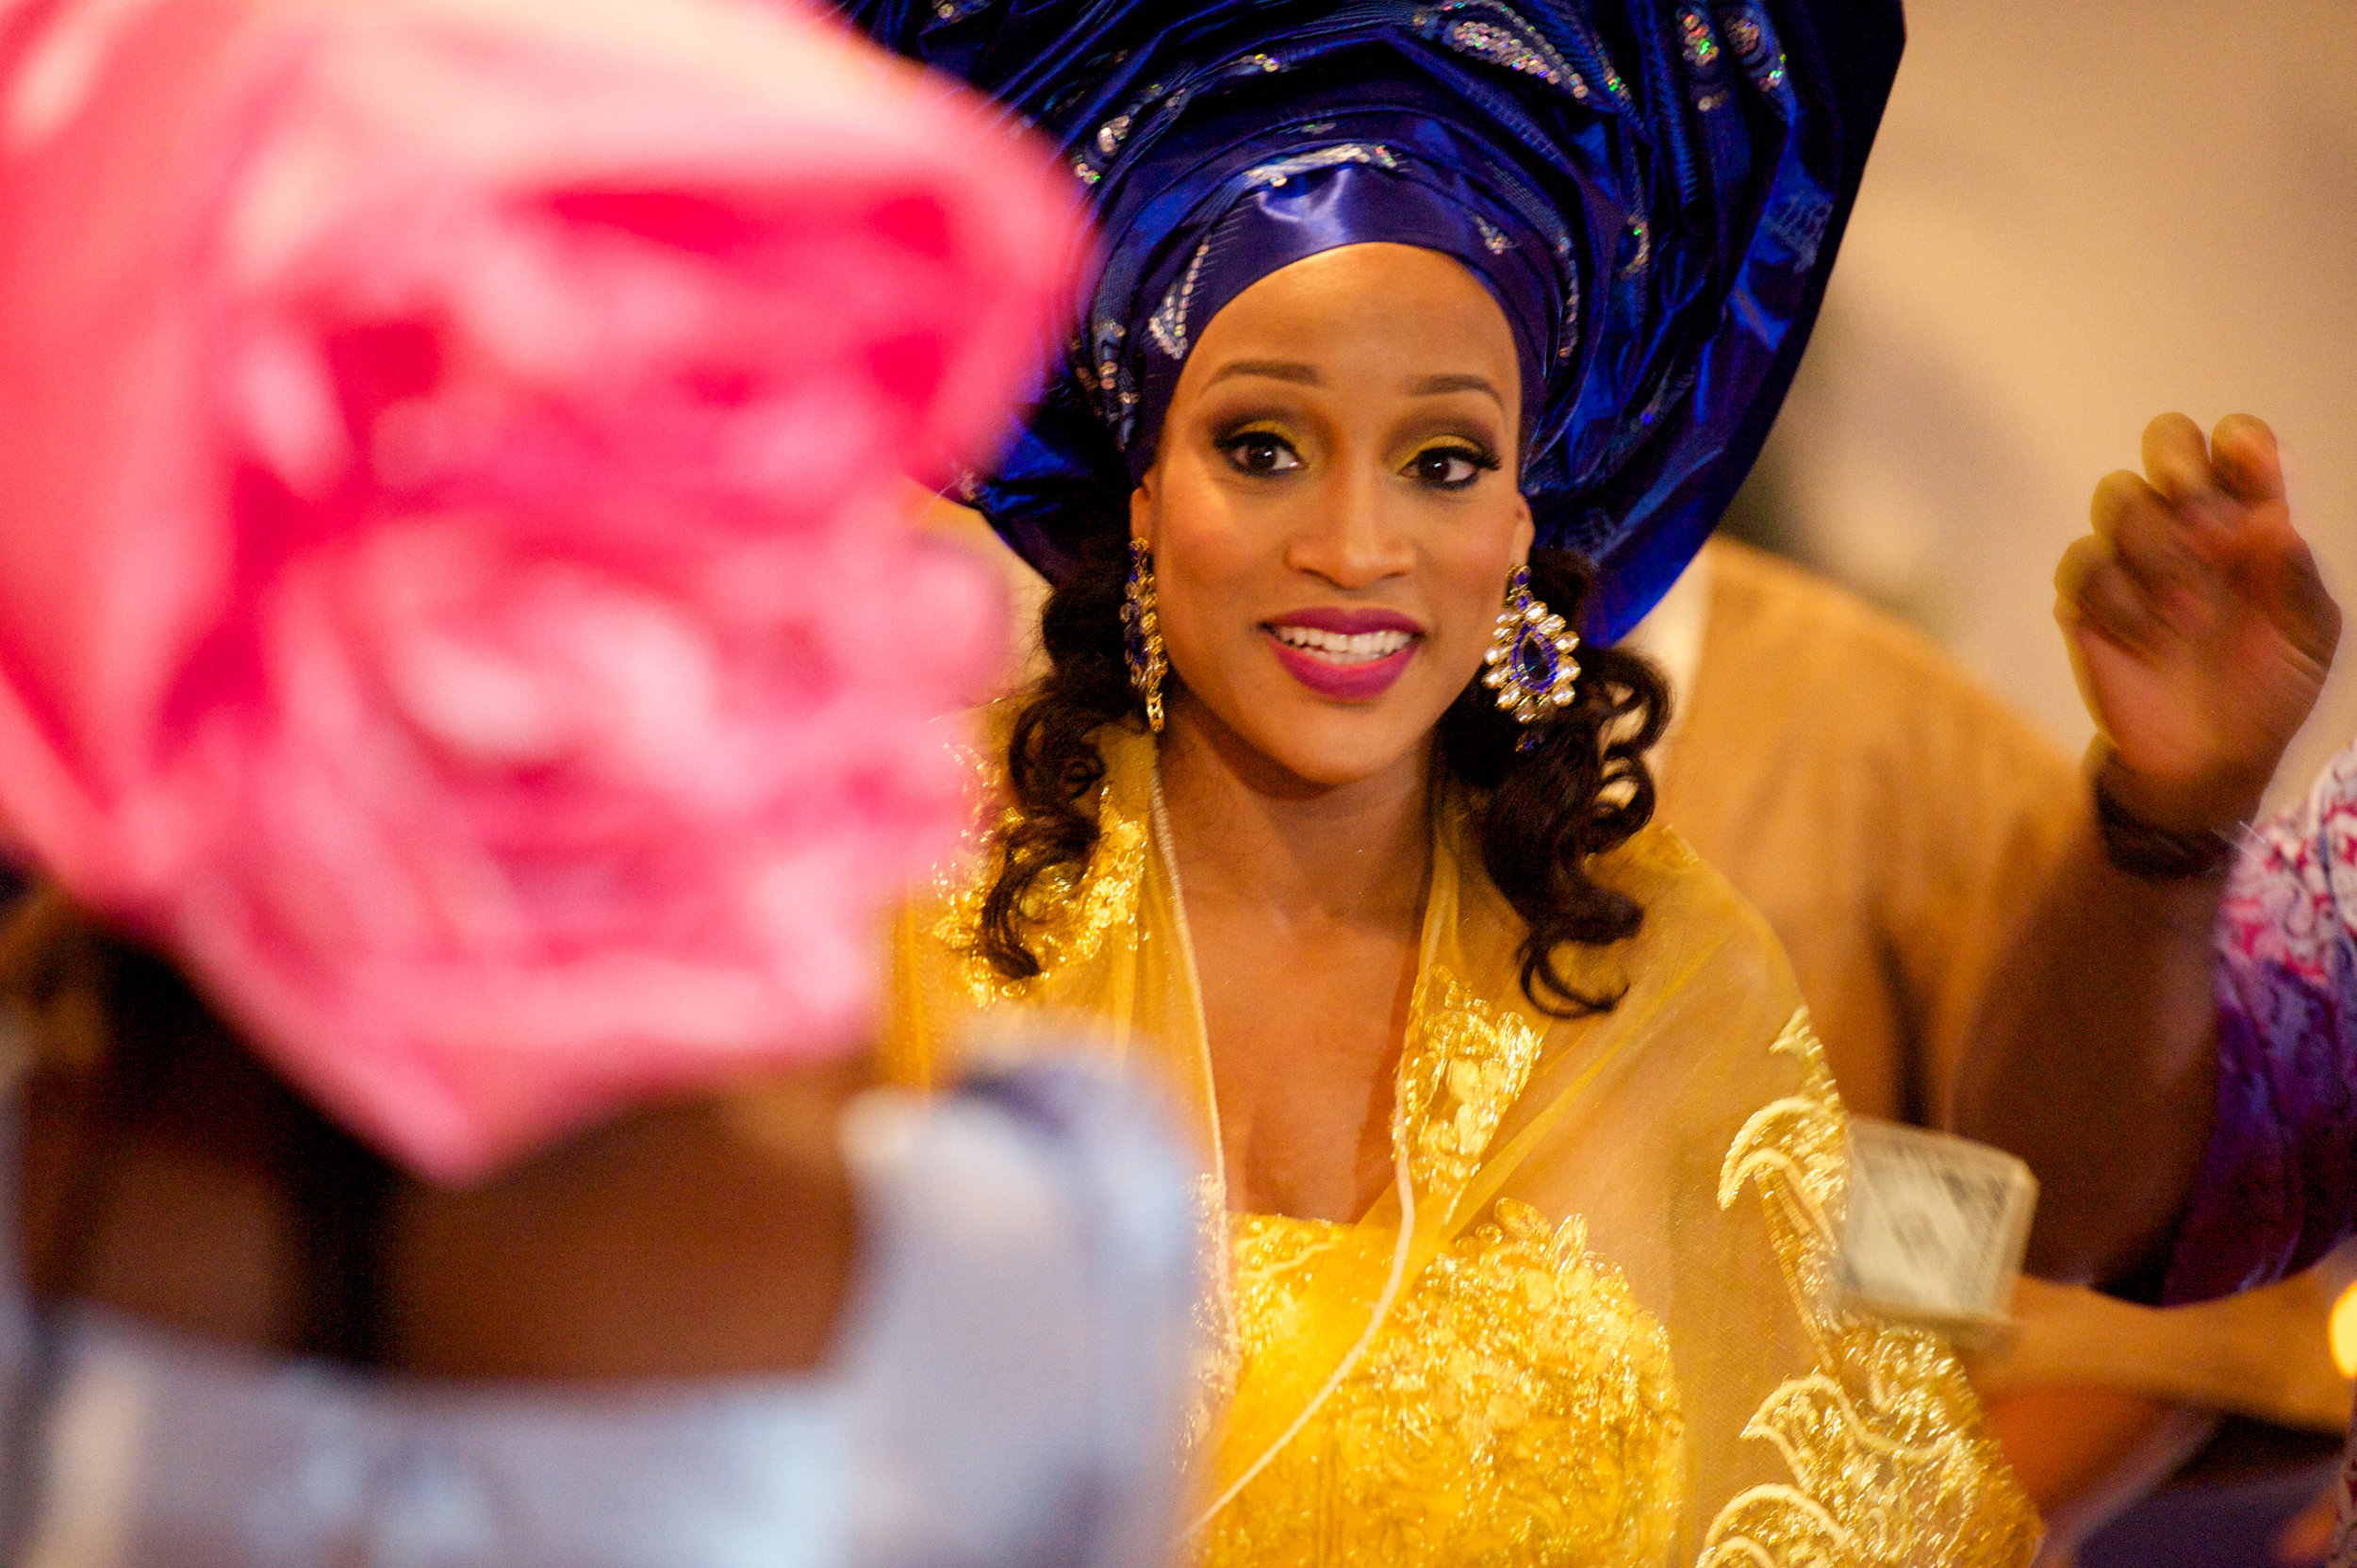 View More: http://glessnerphotography.pass.us/nwankwo-kadiri